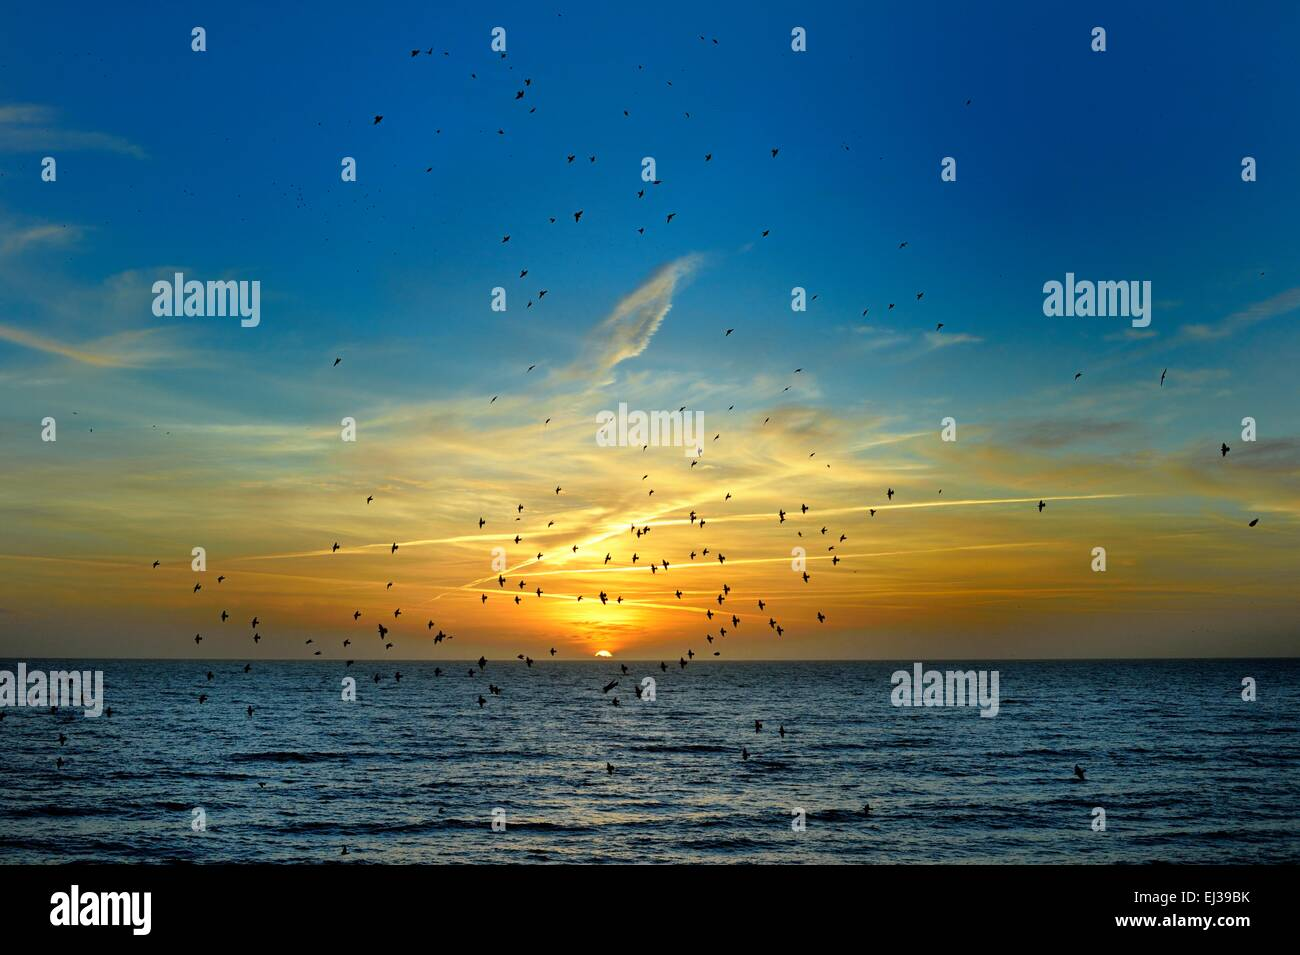 birds starlings sunset sea - Stock Image